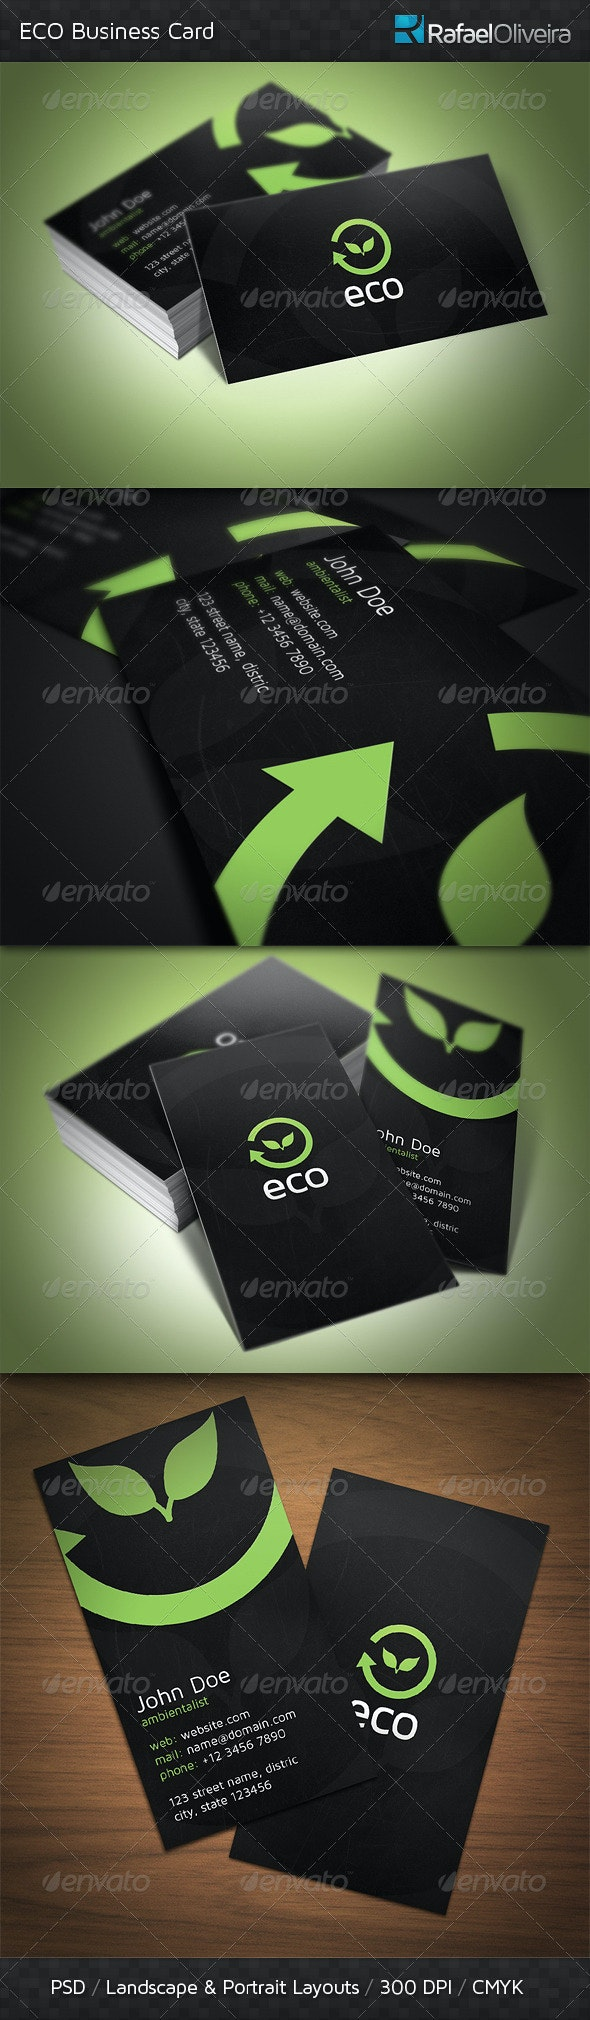 ECO Business Card - Corporate Business Cards